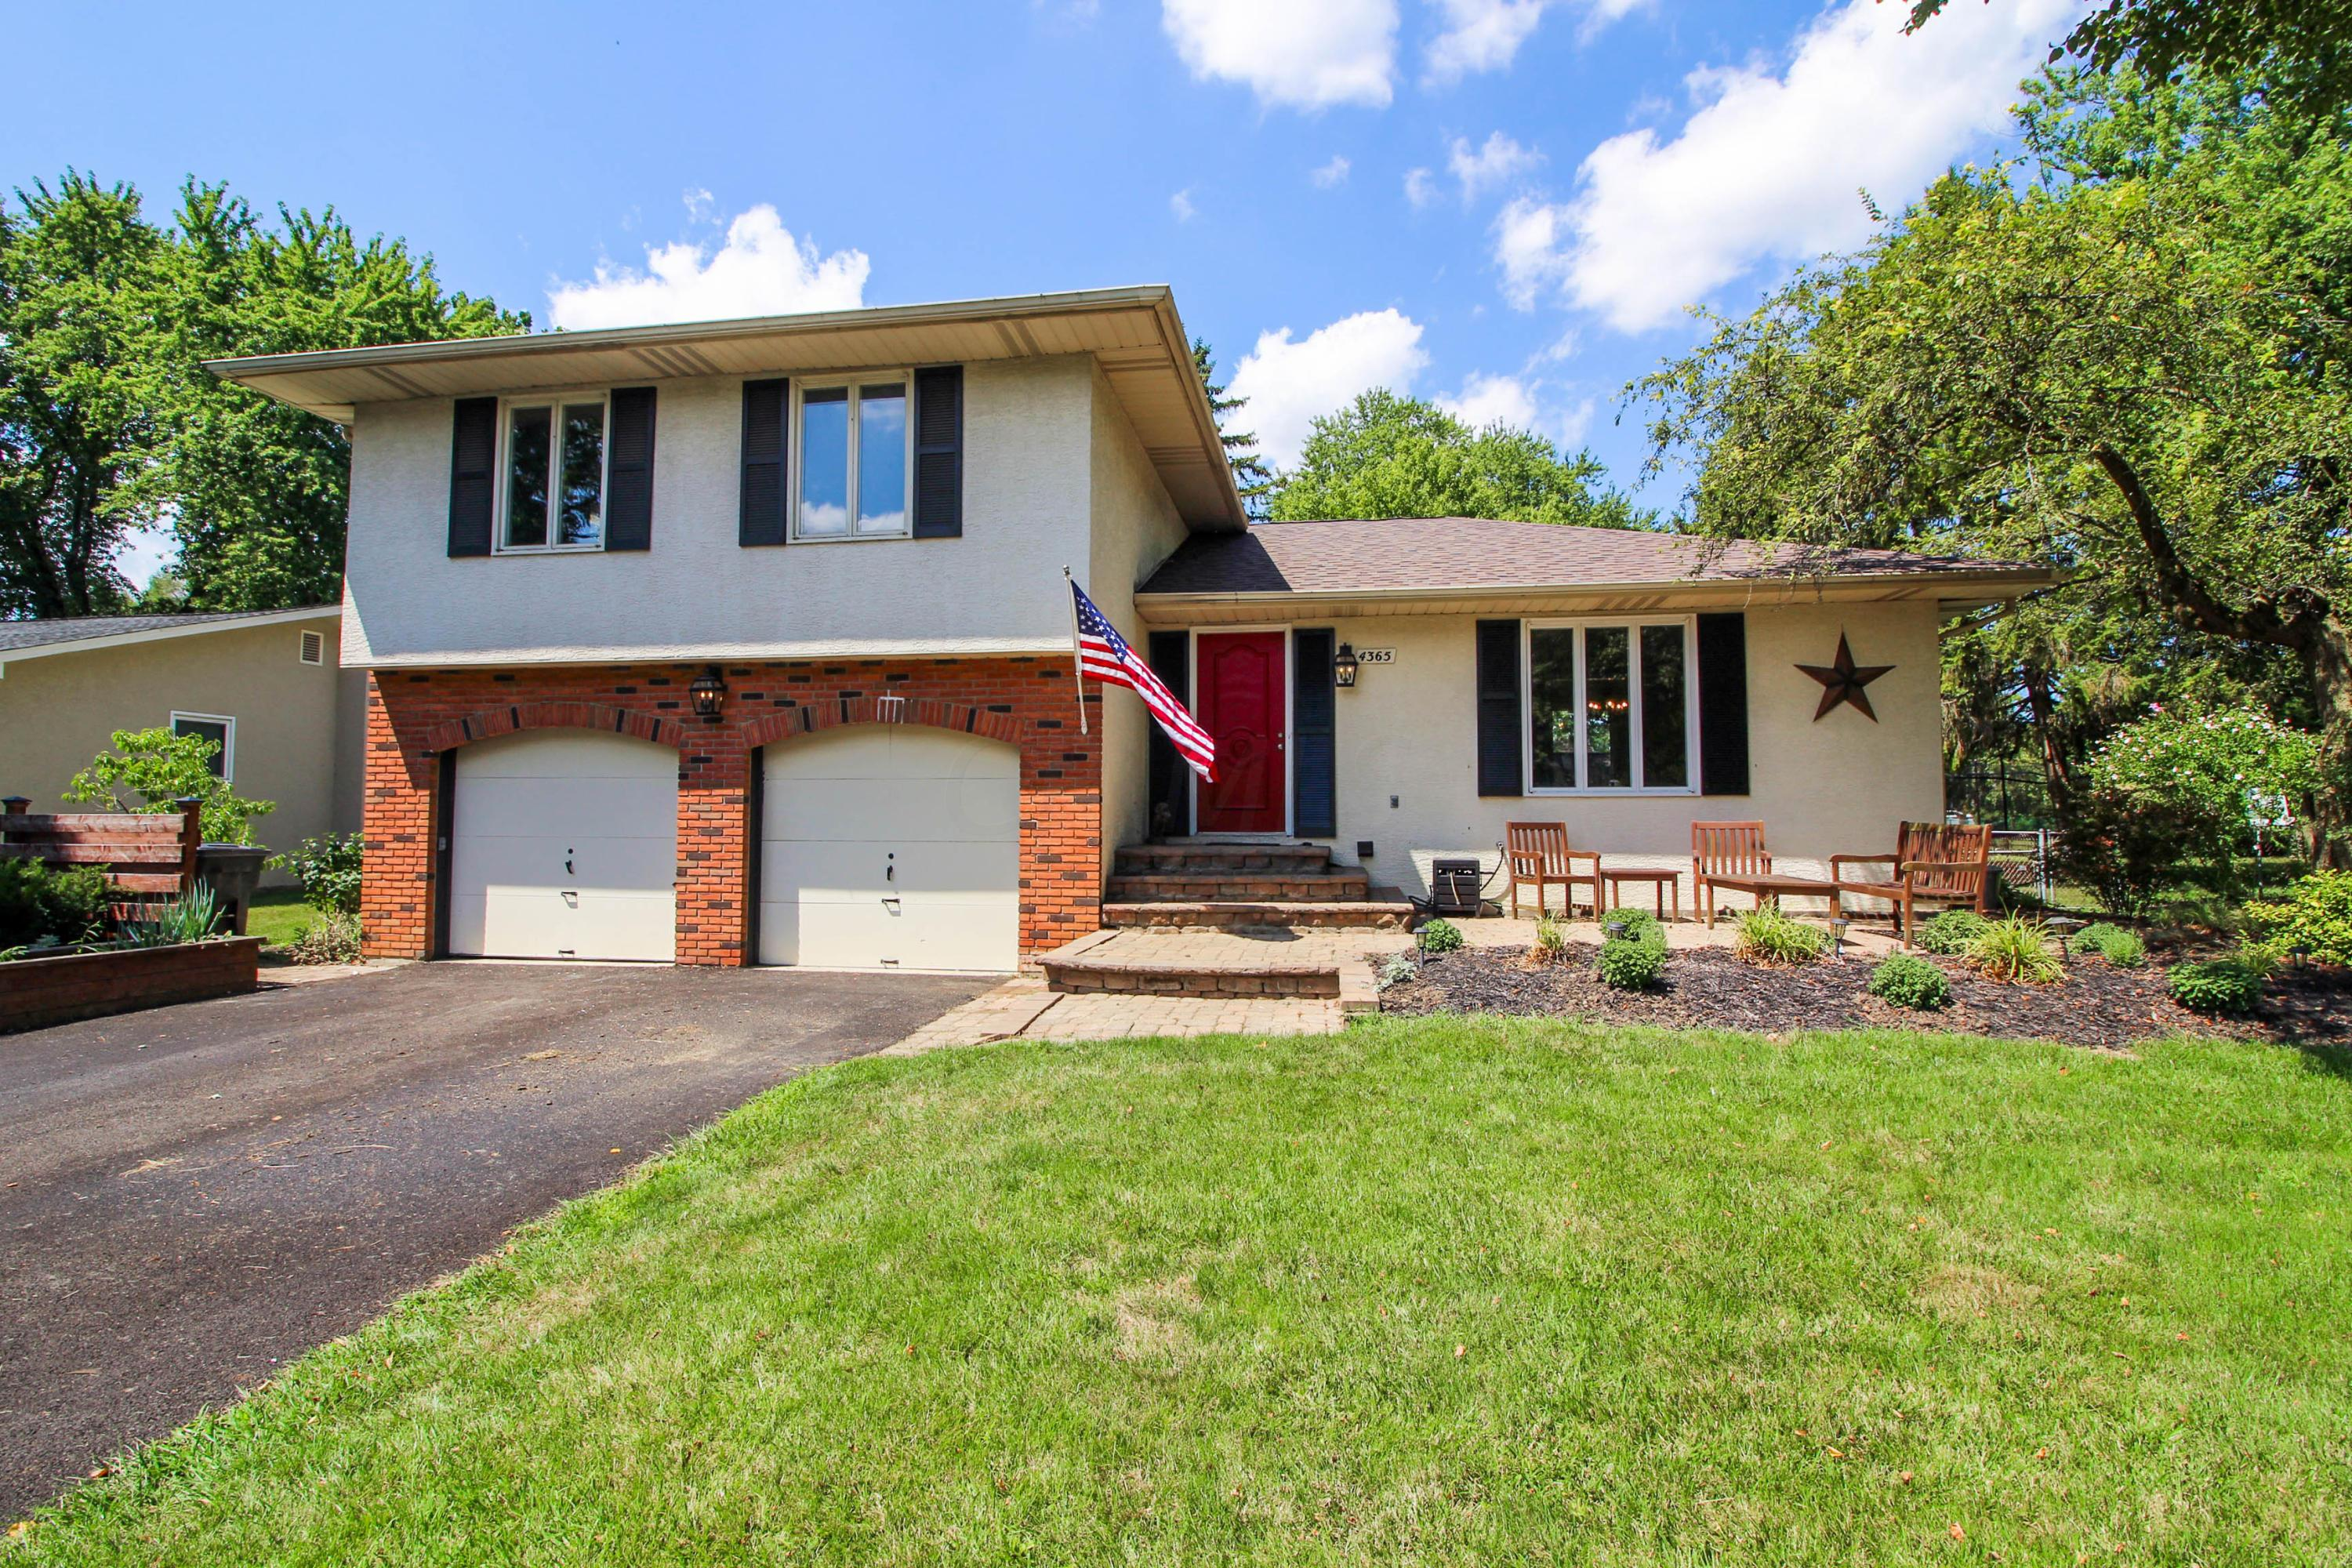 Photo of 4365 Schirtzinger Road, Hilliard, OH 43026